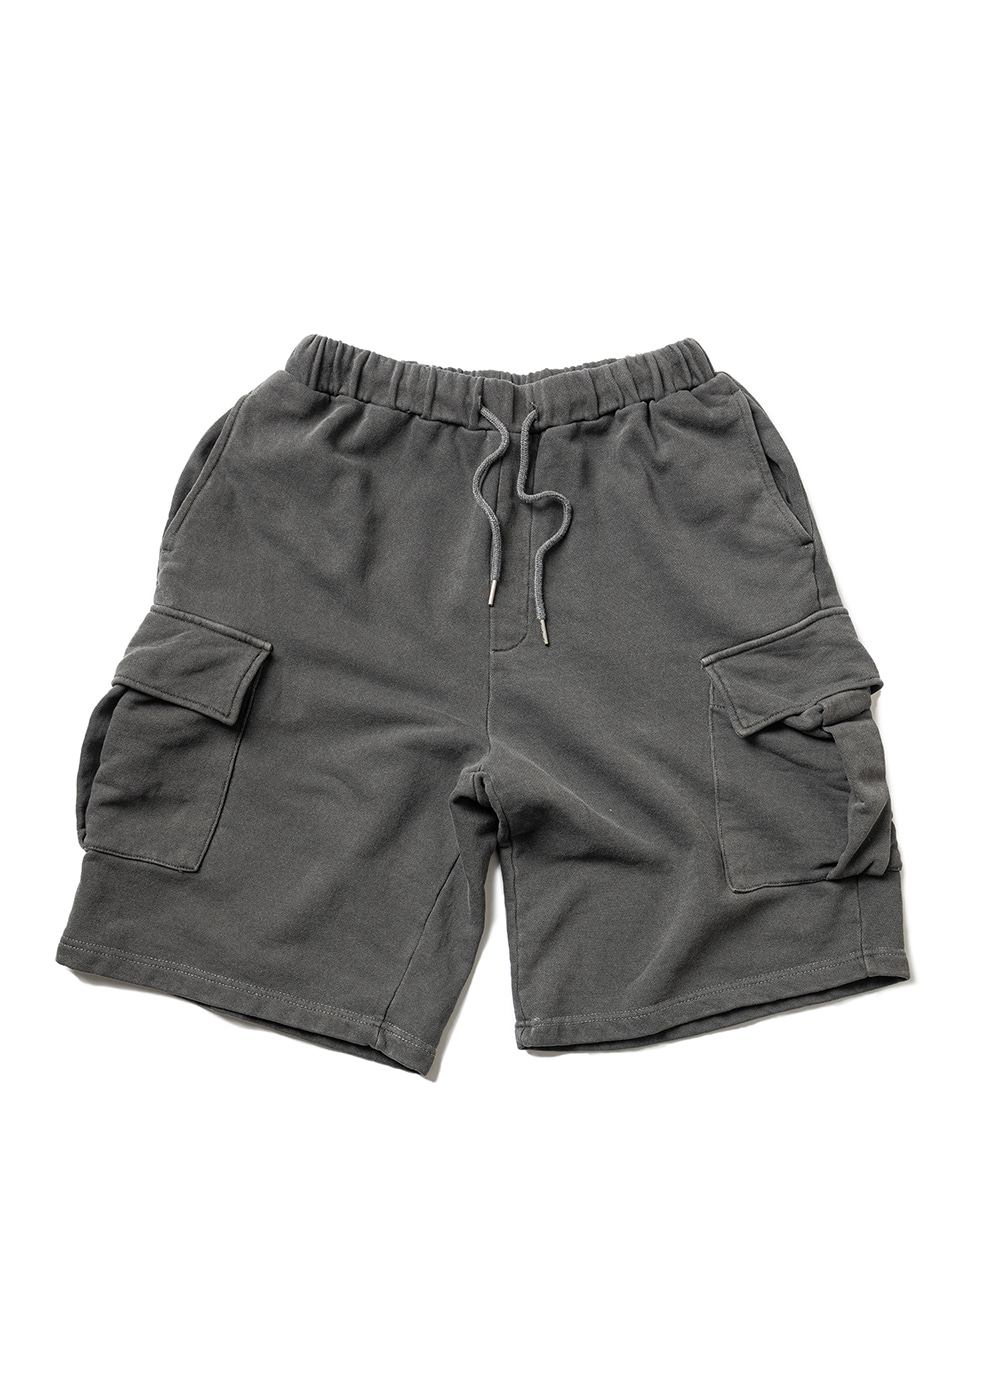 PIGMENT POCKET SHORT PANTS MUZSP001-DG